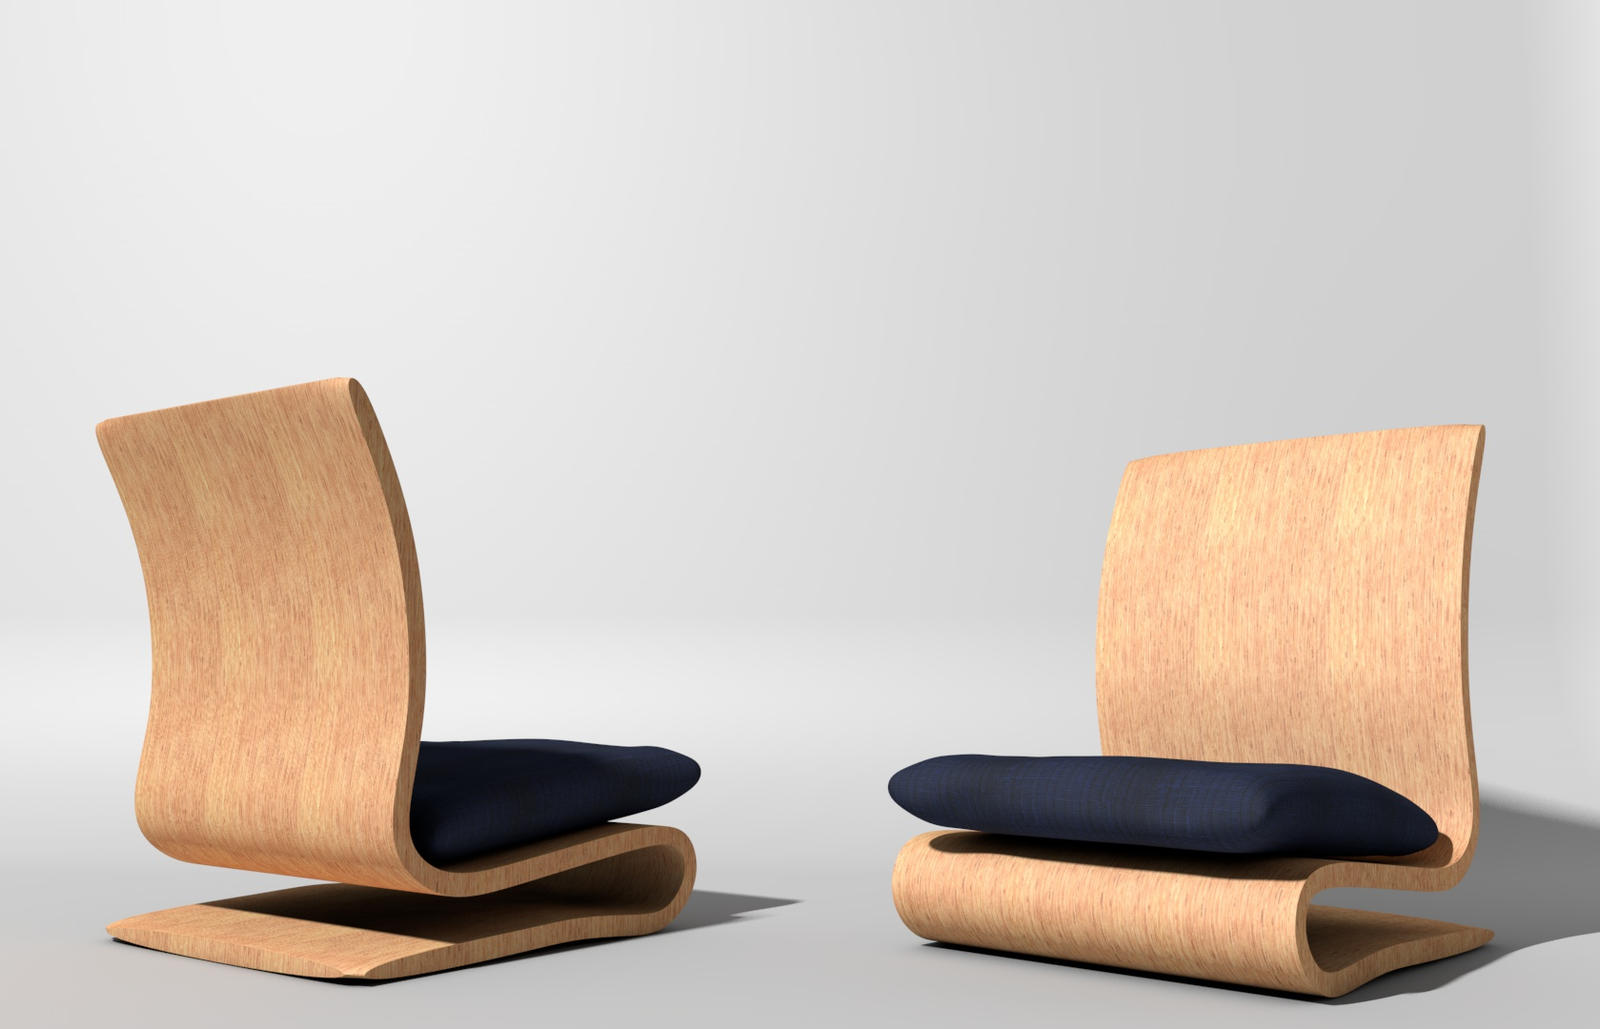 Japanese Chair 3d By Nolfen On Deviantart